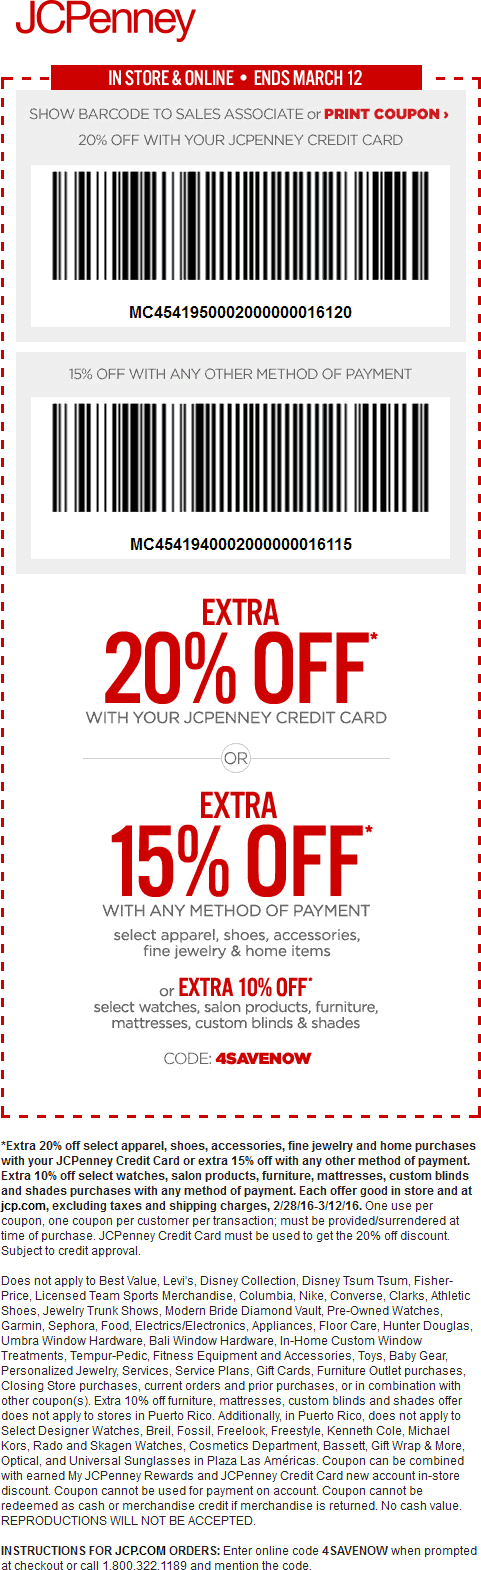 JCPenney Coupon October 2016 15% off at JCPenney, or online via promo code 4SAVENOW